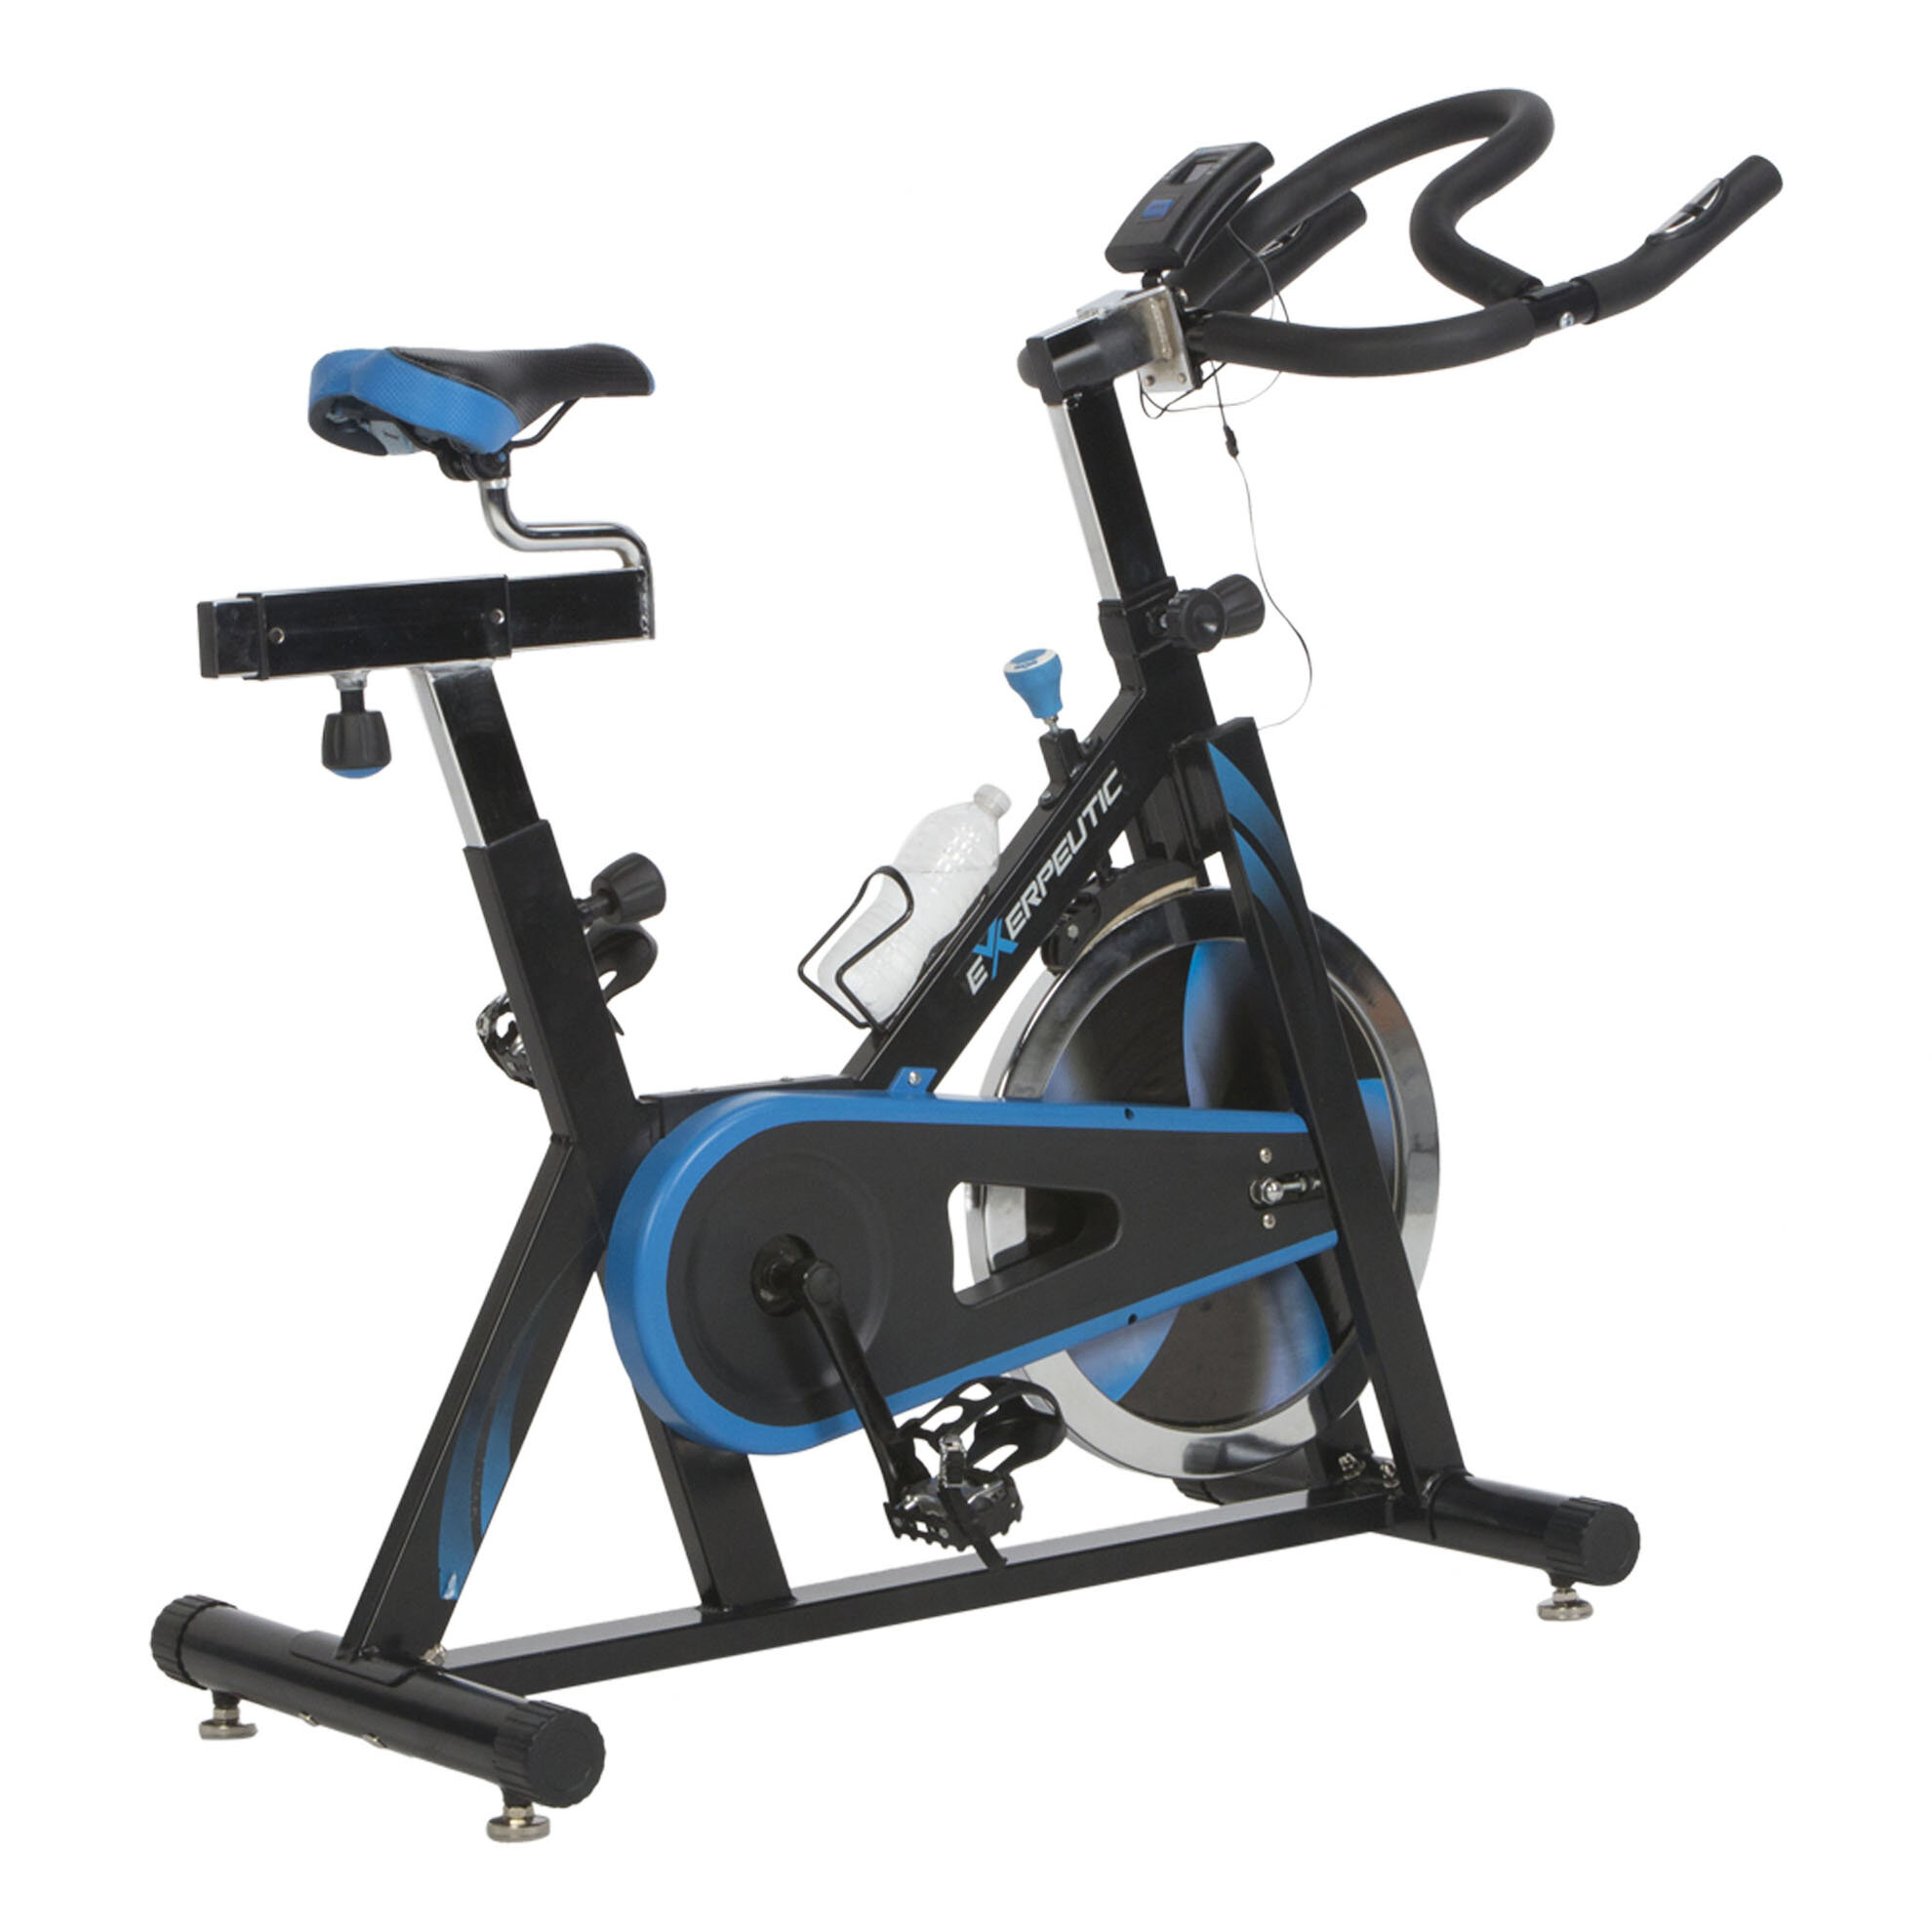 Indoor Cycling Trainer Za: Exerpeutic Fitness LX7 Indoor Training Cycling Bike